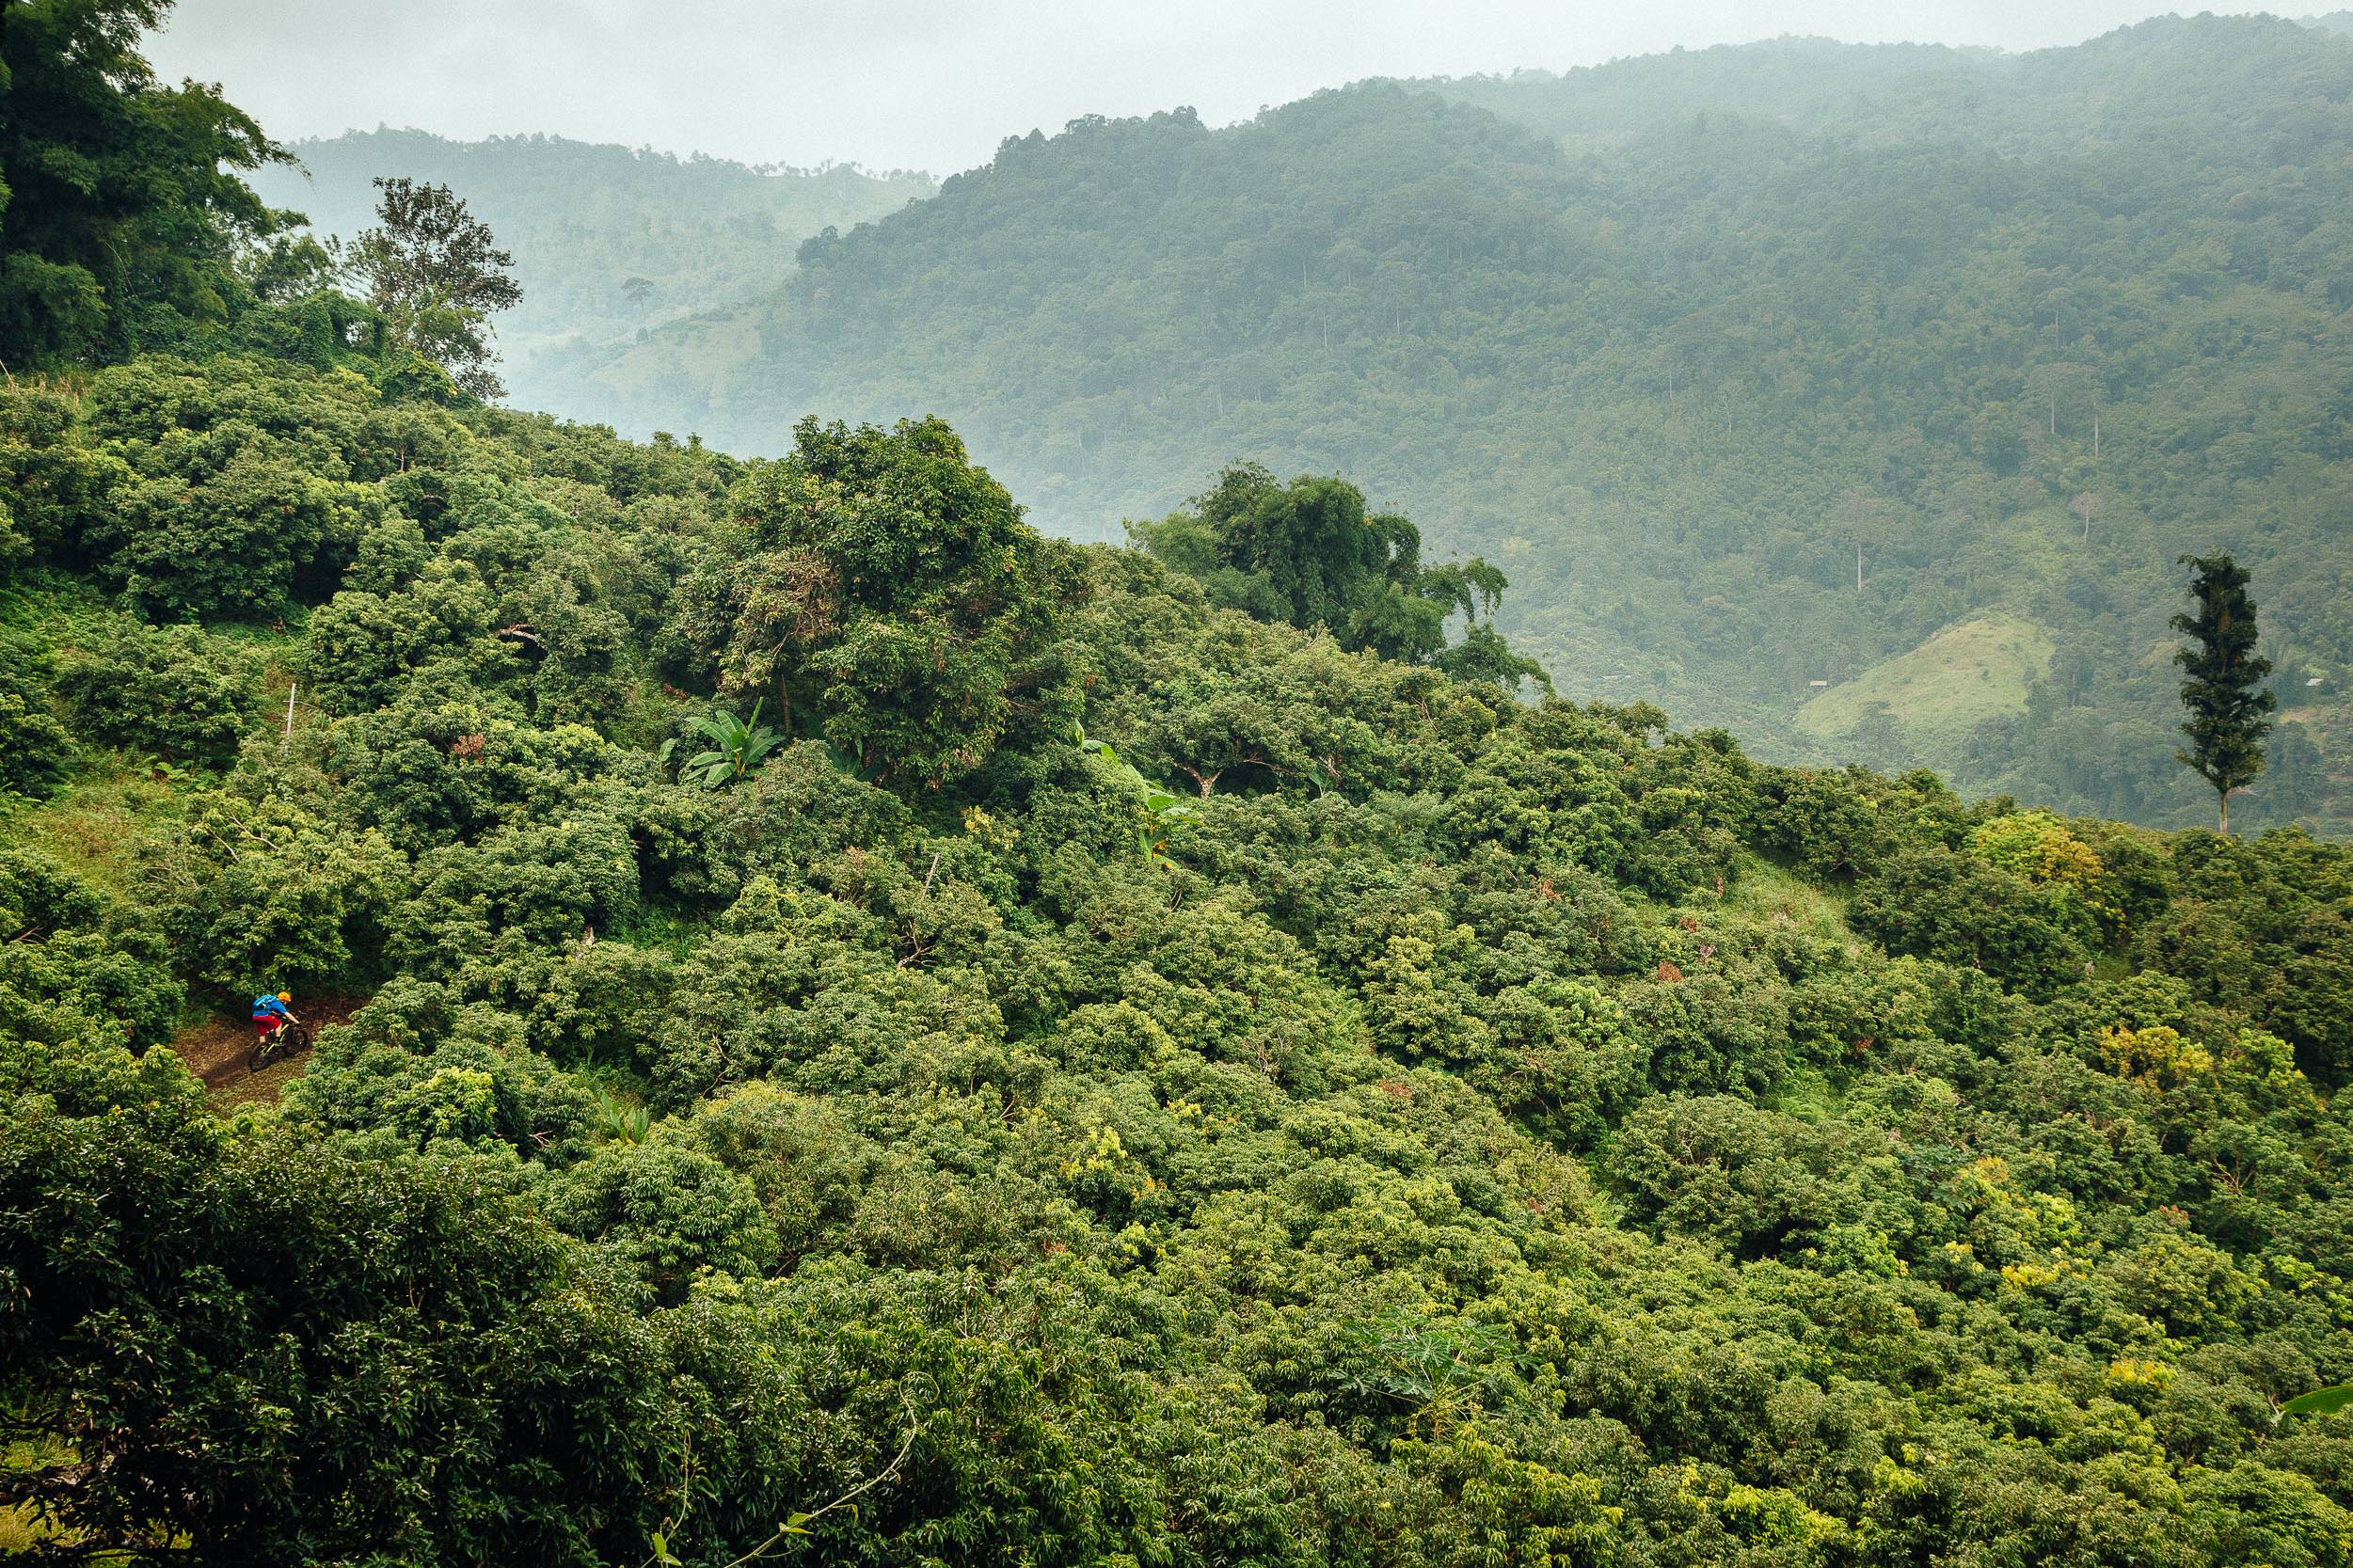 Andrew Whiteford rides single track through the jungle near Chiang Mai, Thailand